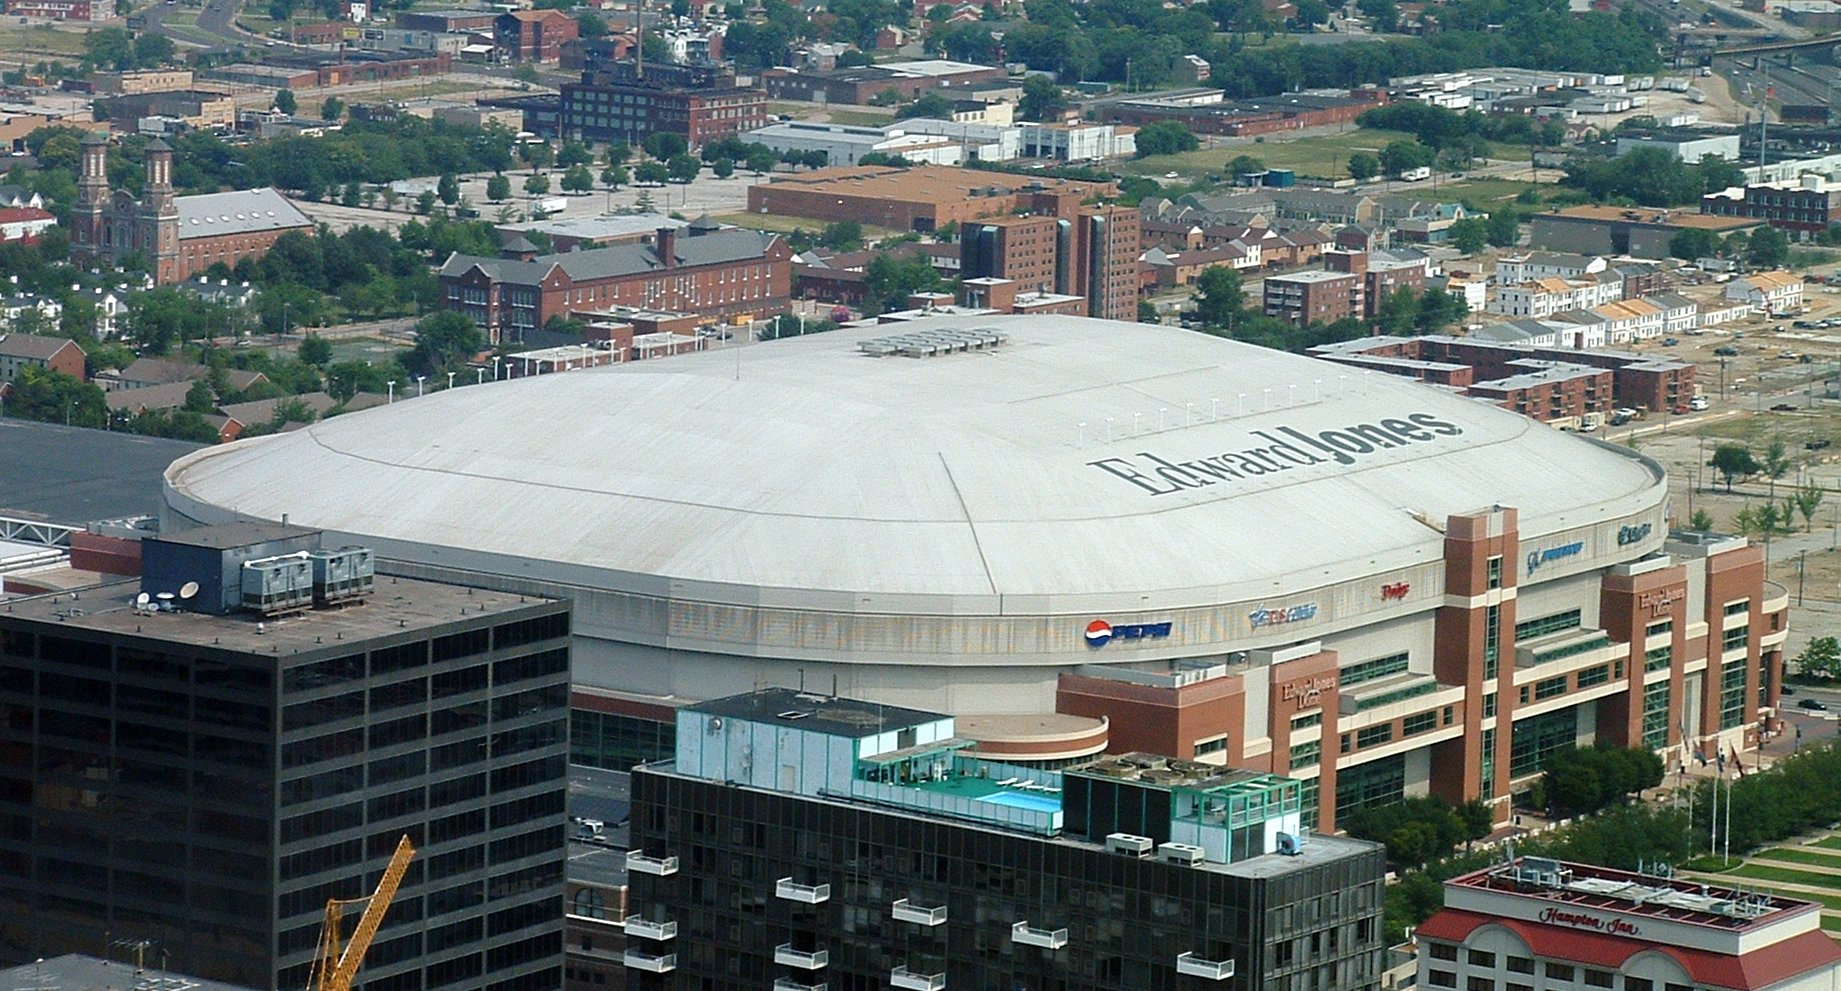 Edward Jones Dome, St Louis.